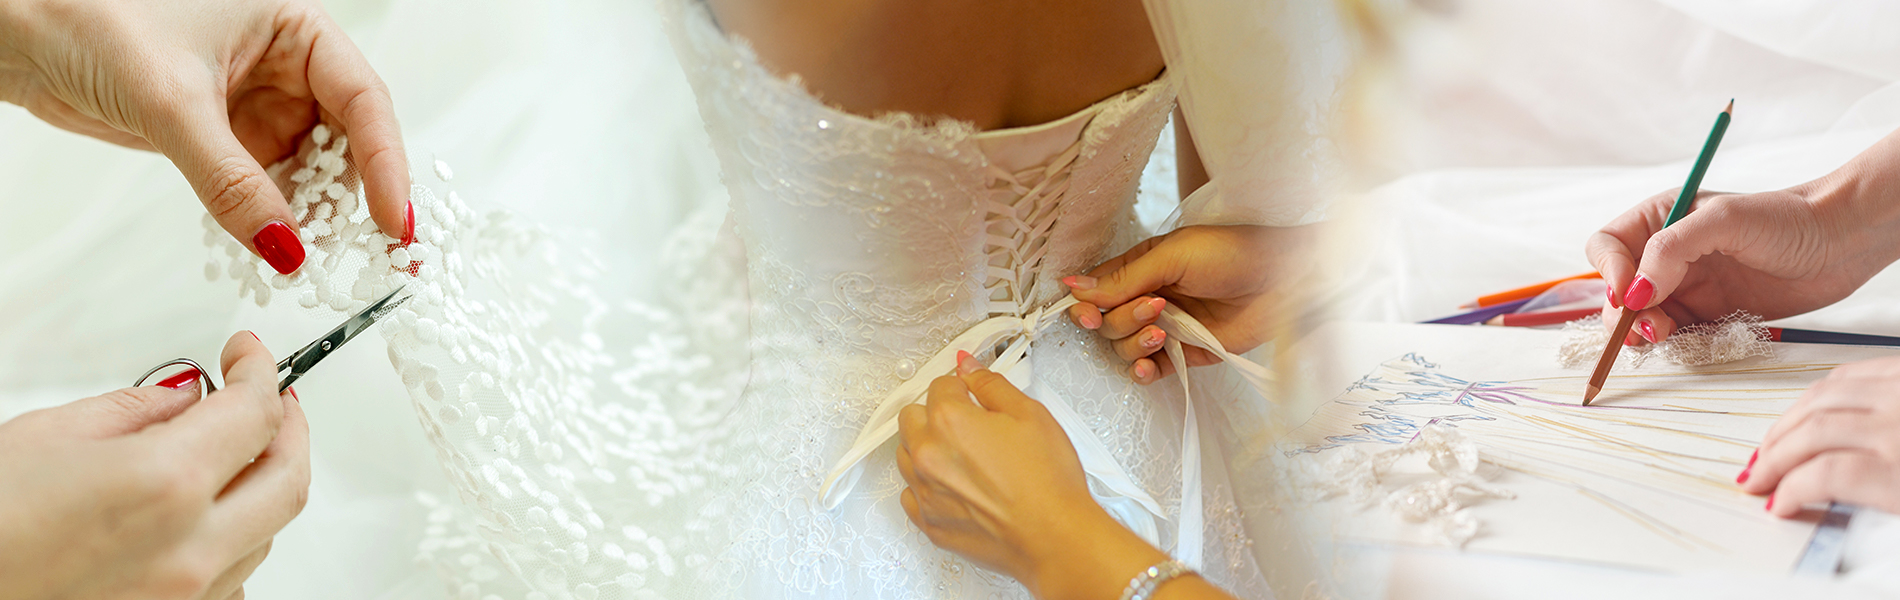 sublimefrance-robesdemariee-showroom-herblay-atelier-couture2